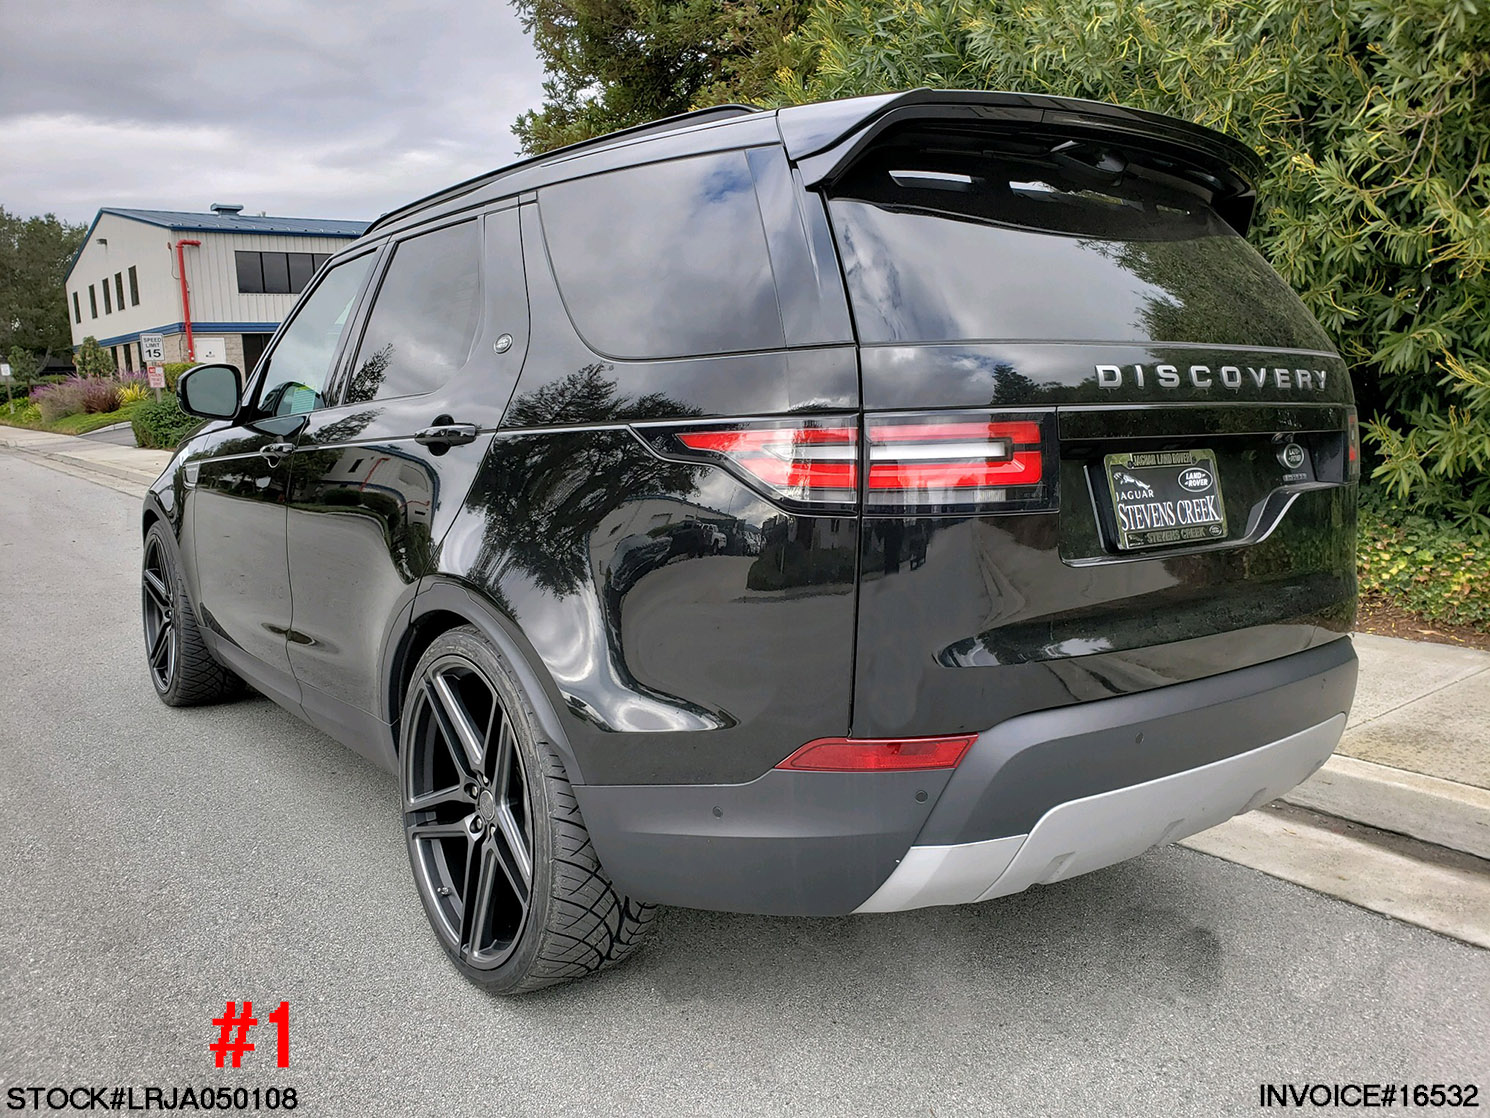 LRJA050108- 2018 LANDROVER DISCOVERY HSE